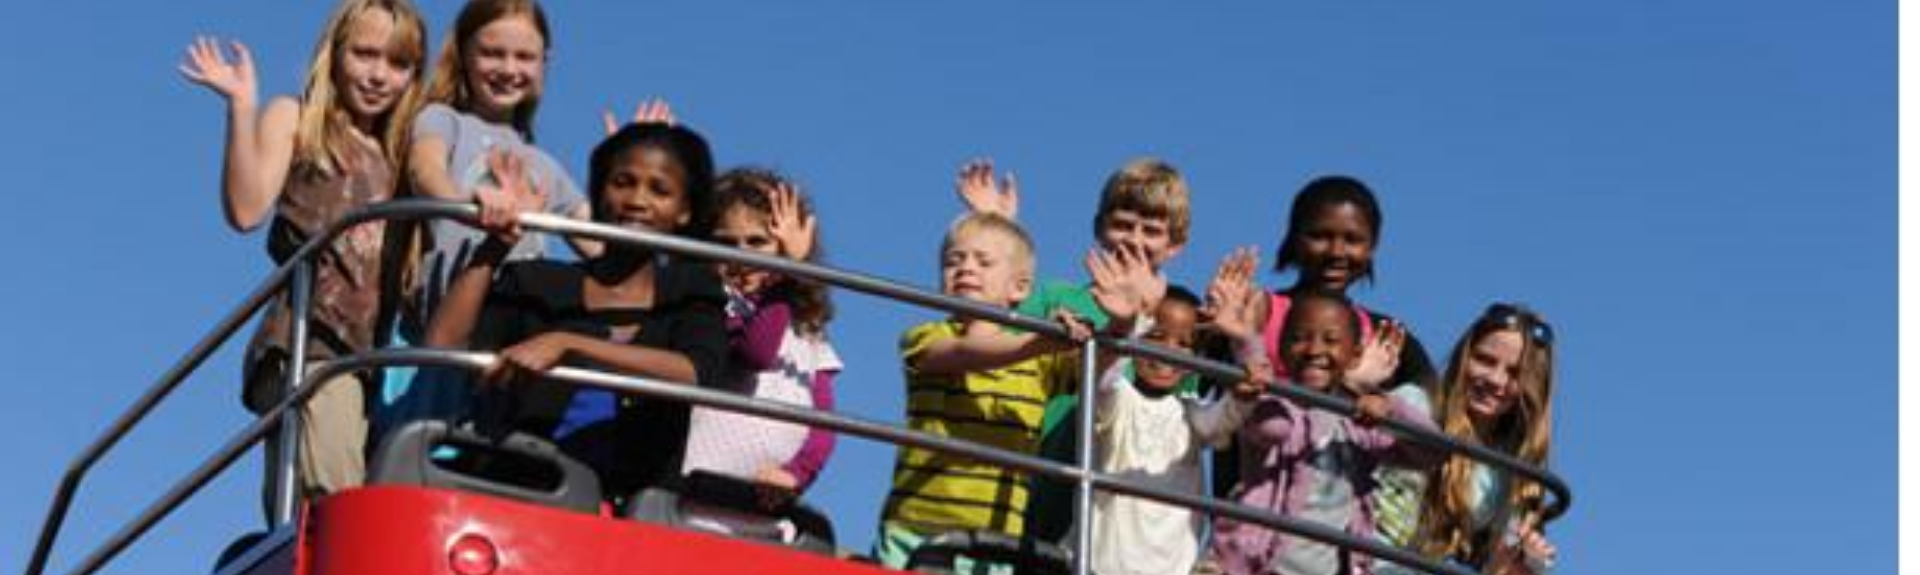 City Sightseeing South Africa | Cape Town | Things to do With Kids